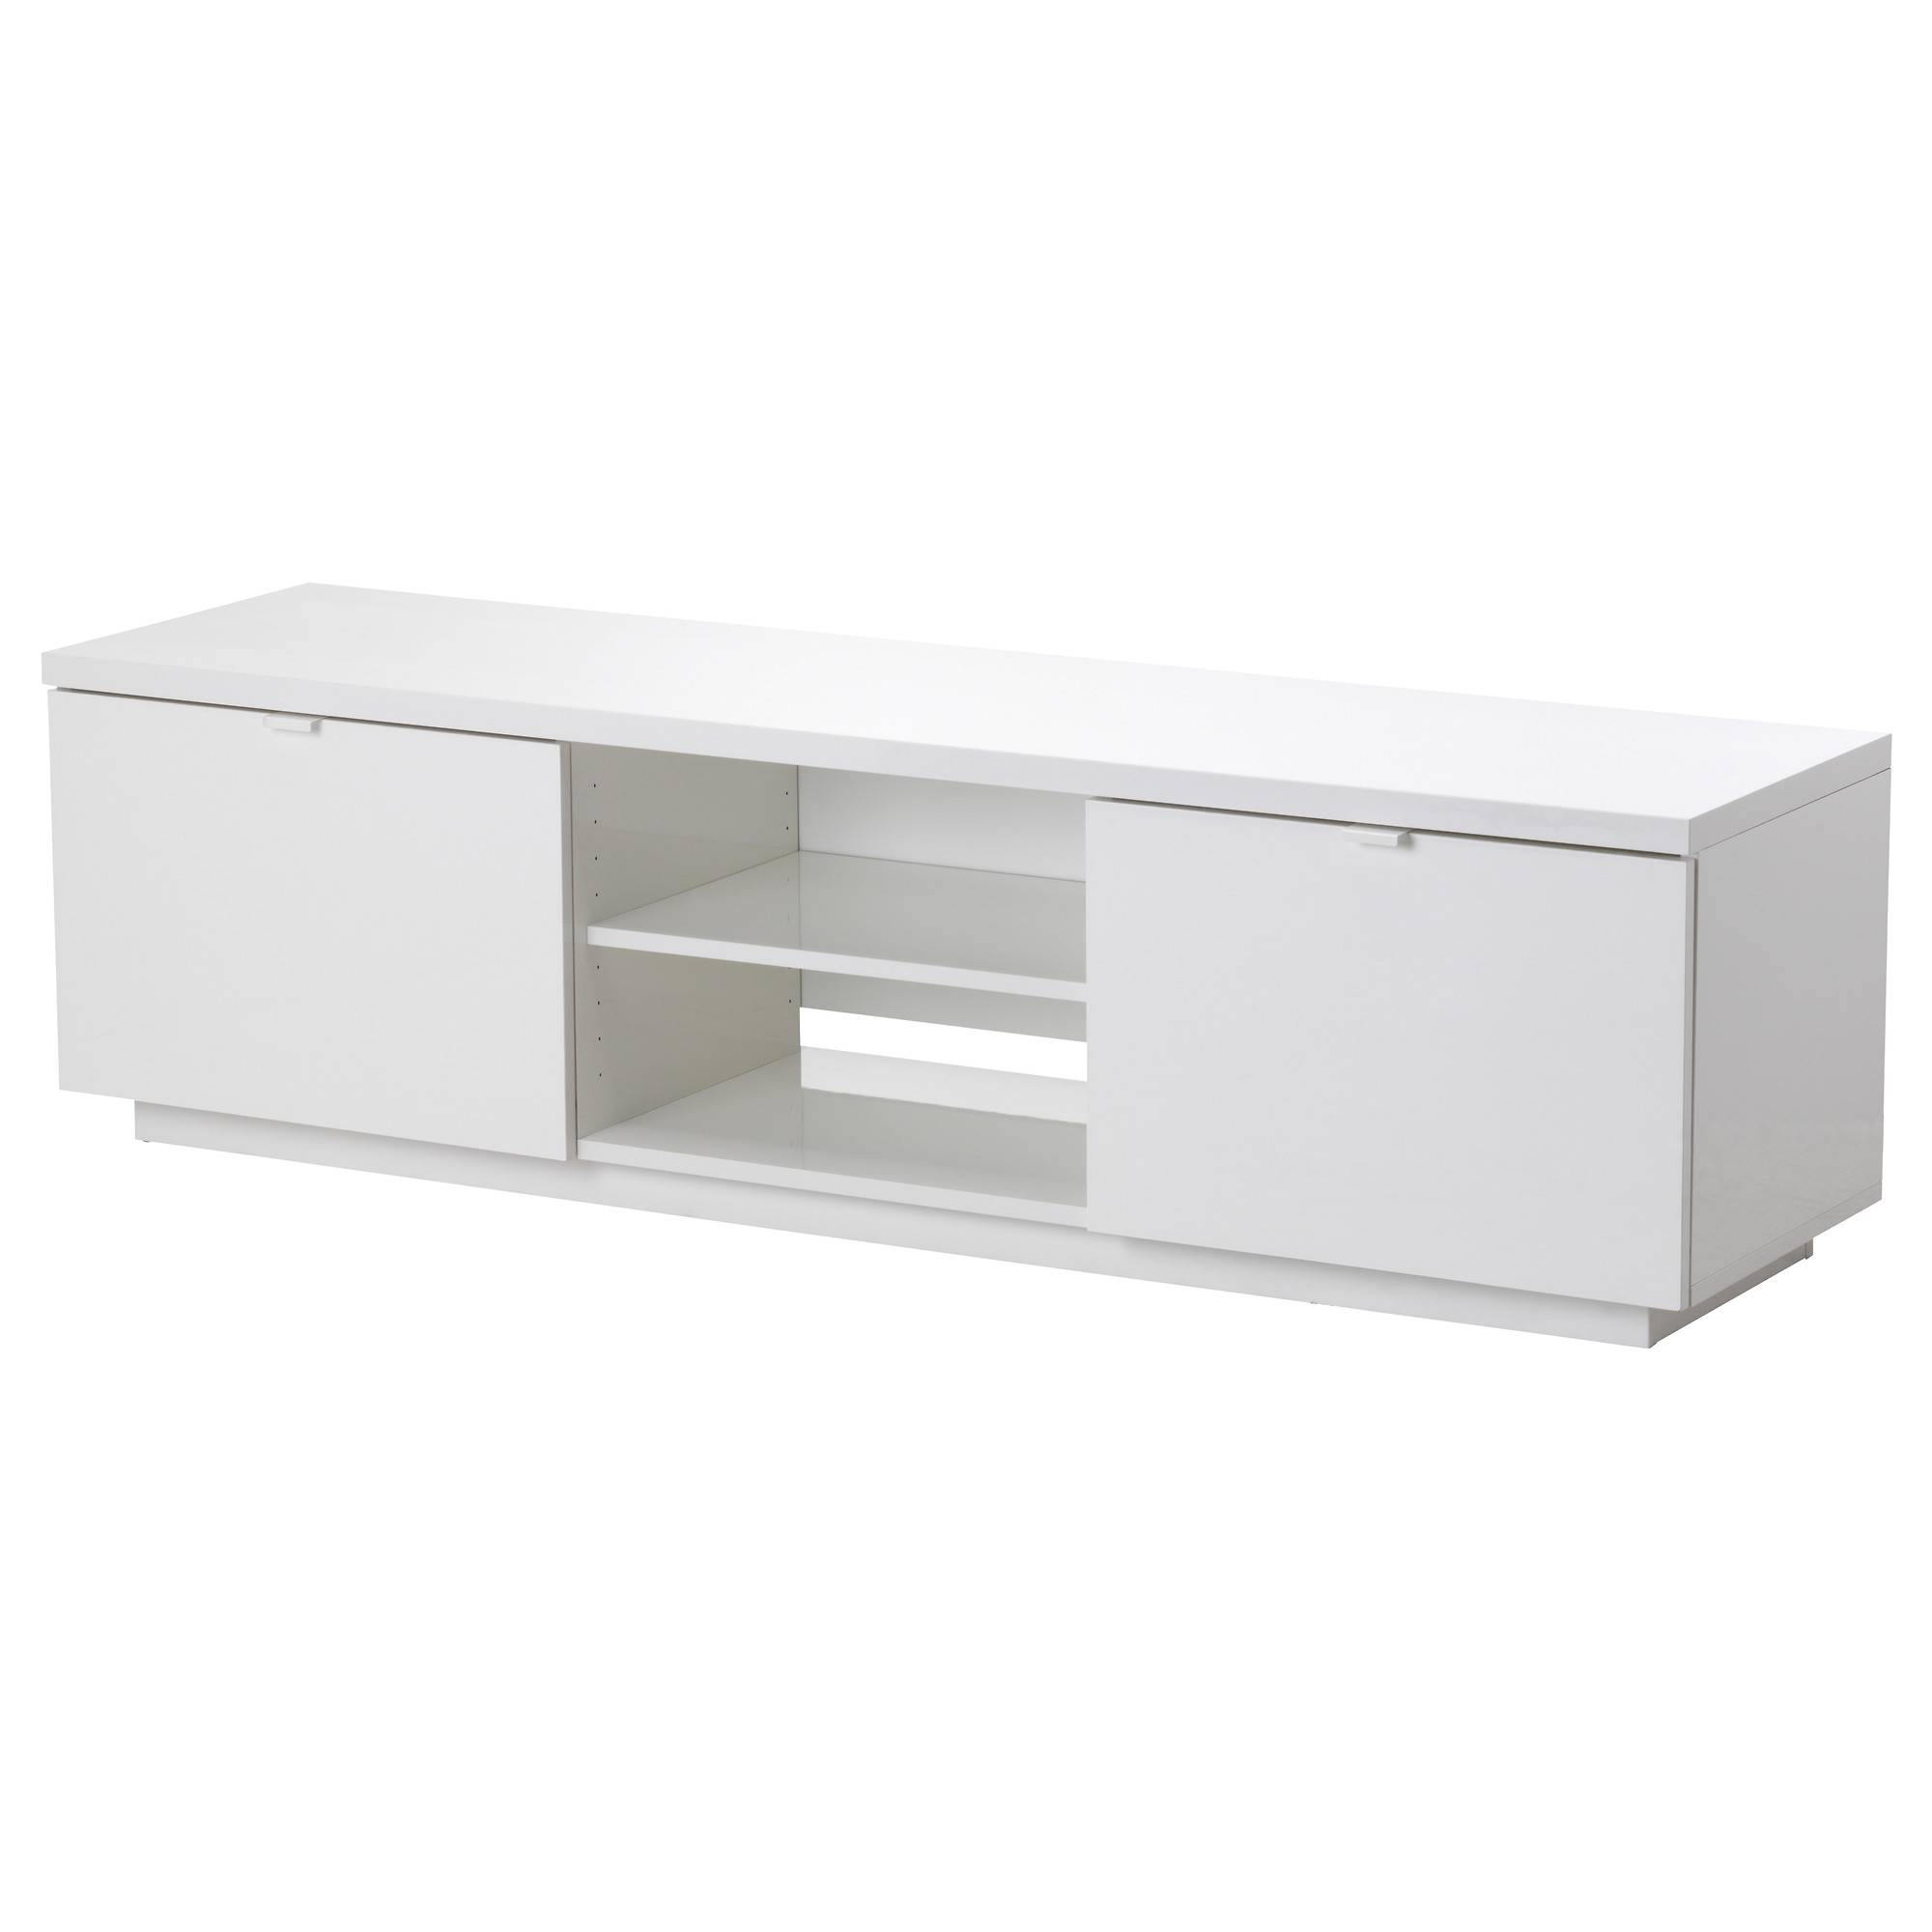 Byås Tv Unit - Ikea pertaining to 60 Cm High Tv Stand (Image 4 of 15)